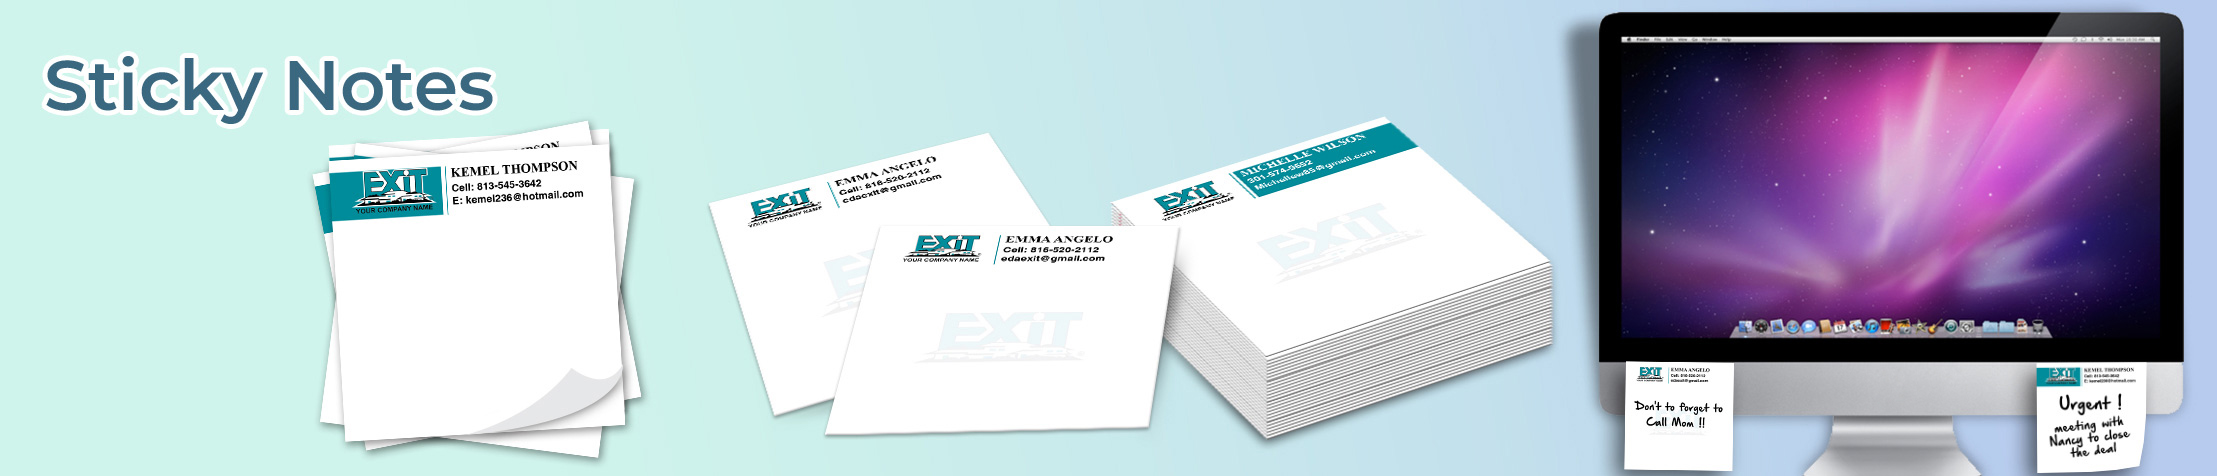 Exit Realty Sticky Notes - Exit Realty approved vendor personalized realtor post it note pads | BestPrintBuy.com